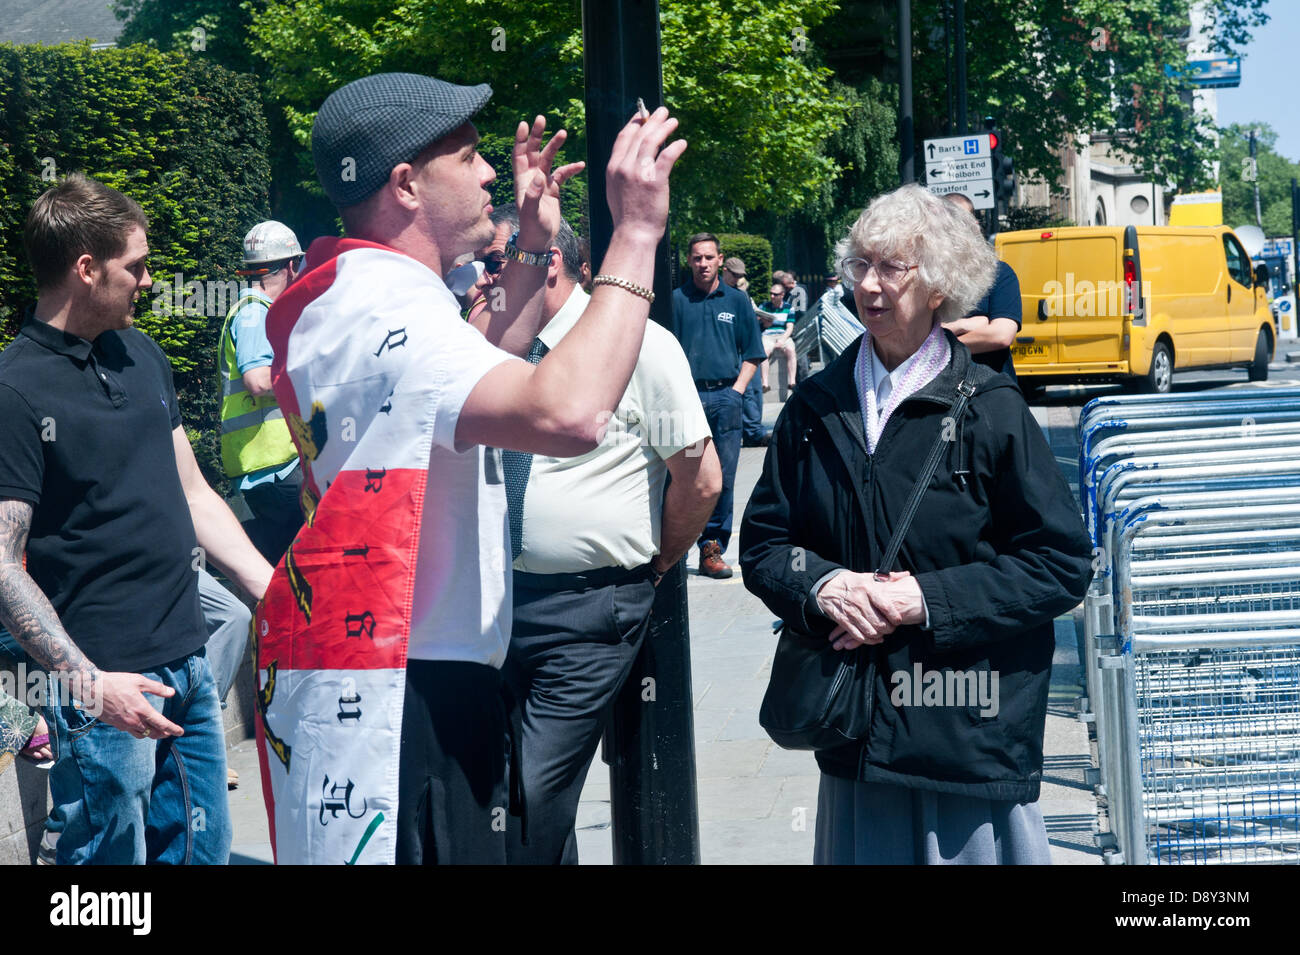 London, UK. 6th June 2013. an old lady talks to an english Defence League supporter during a rally at the Old Bailey - Stock Image